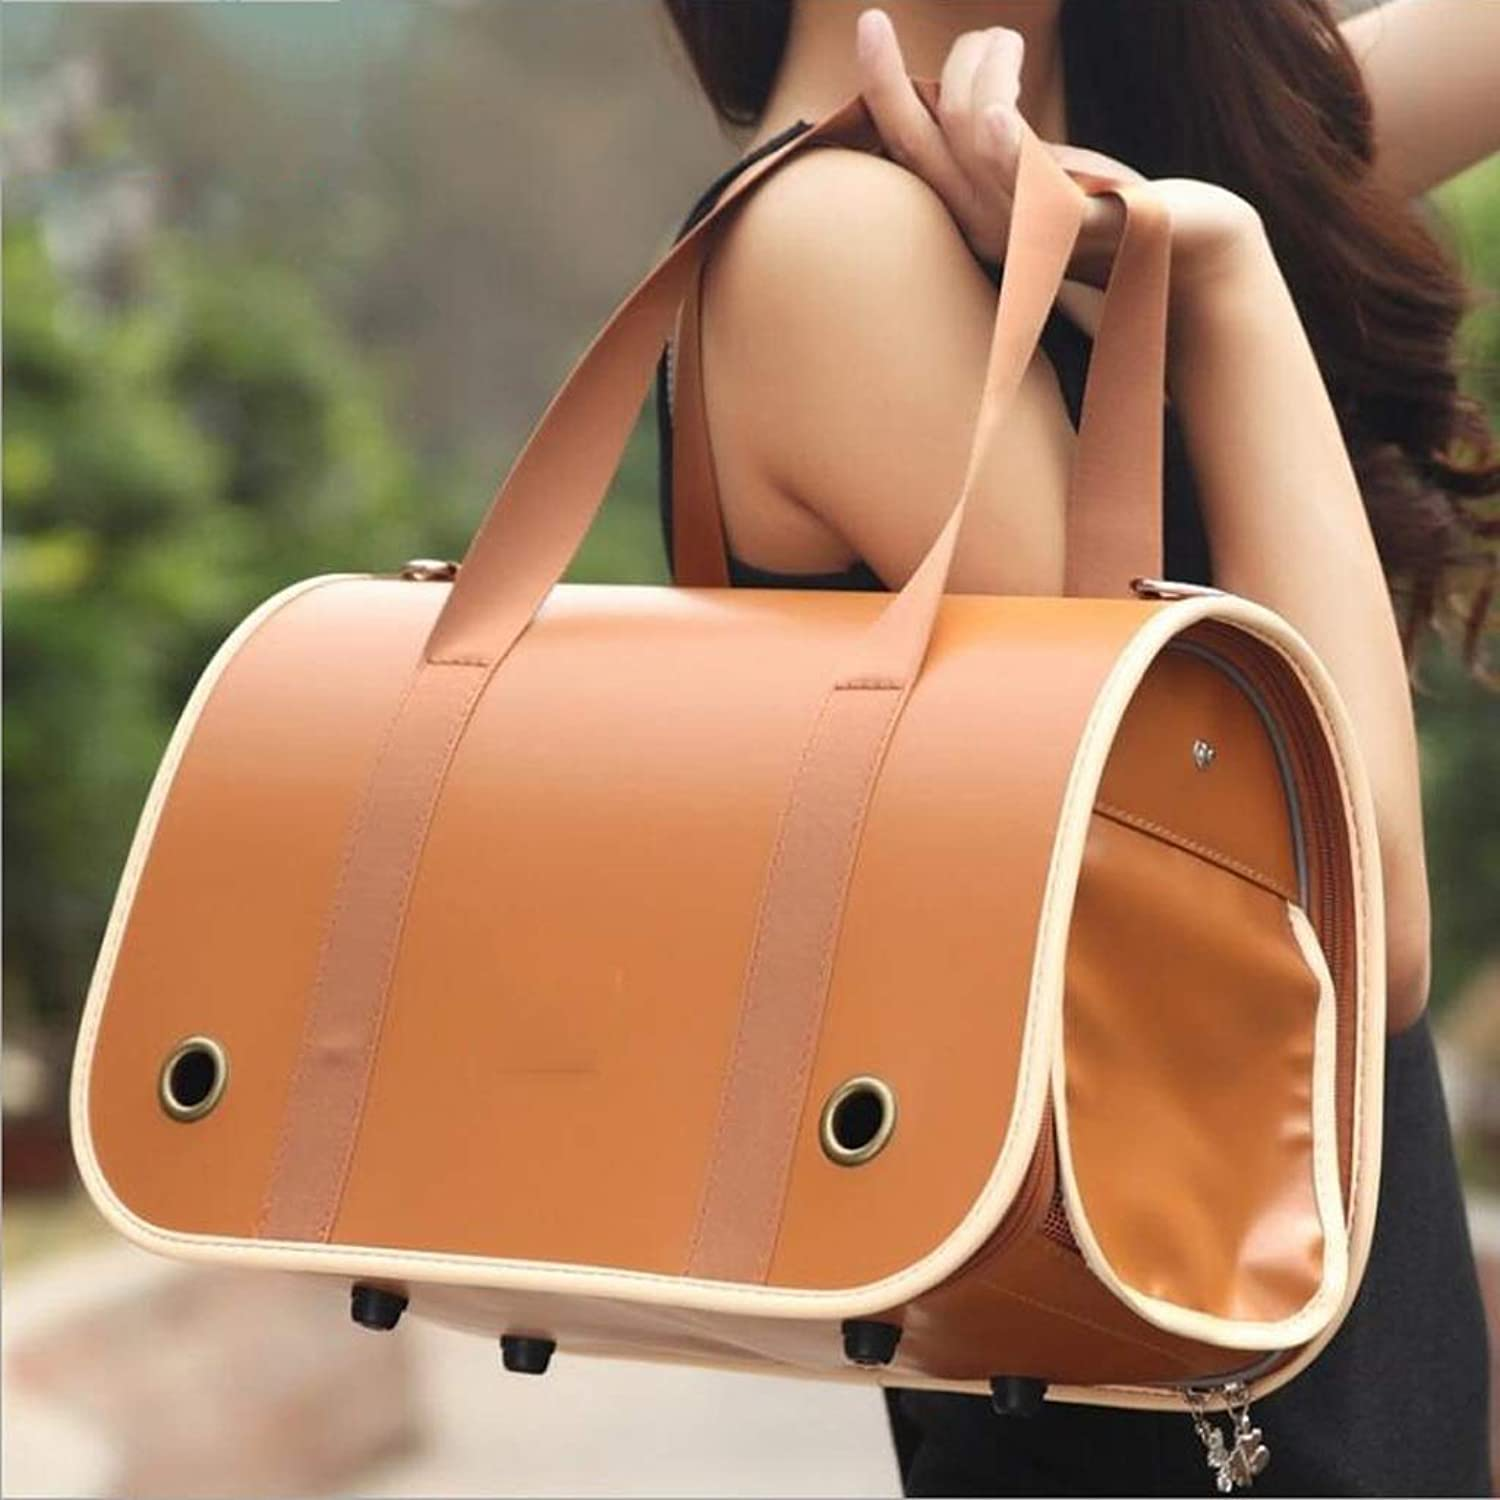 HAO SHOP Pet Travel Carrier Comfort Expandable Foldable Travel bag for Dogs and Cats (color   BROWN, Size   37  18  23cm)